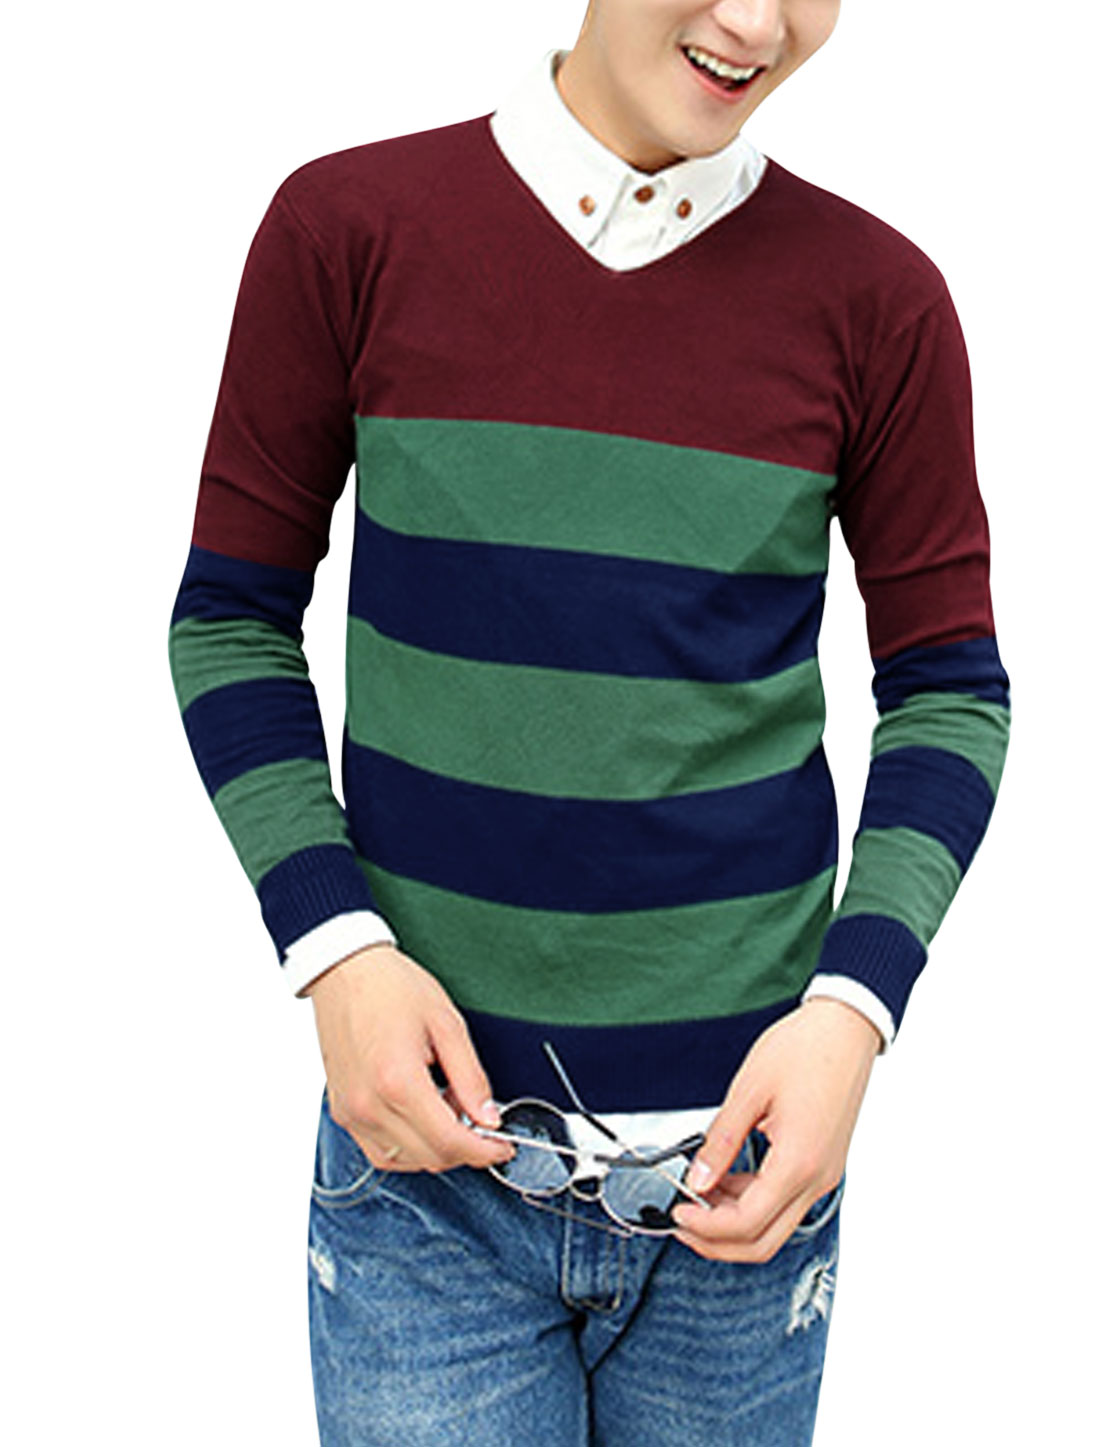 Color Blocking V Neck Stripes Stylish Burgundy Knit Shirt for Man M